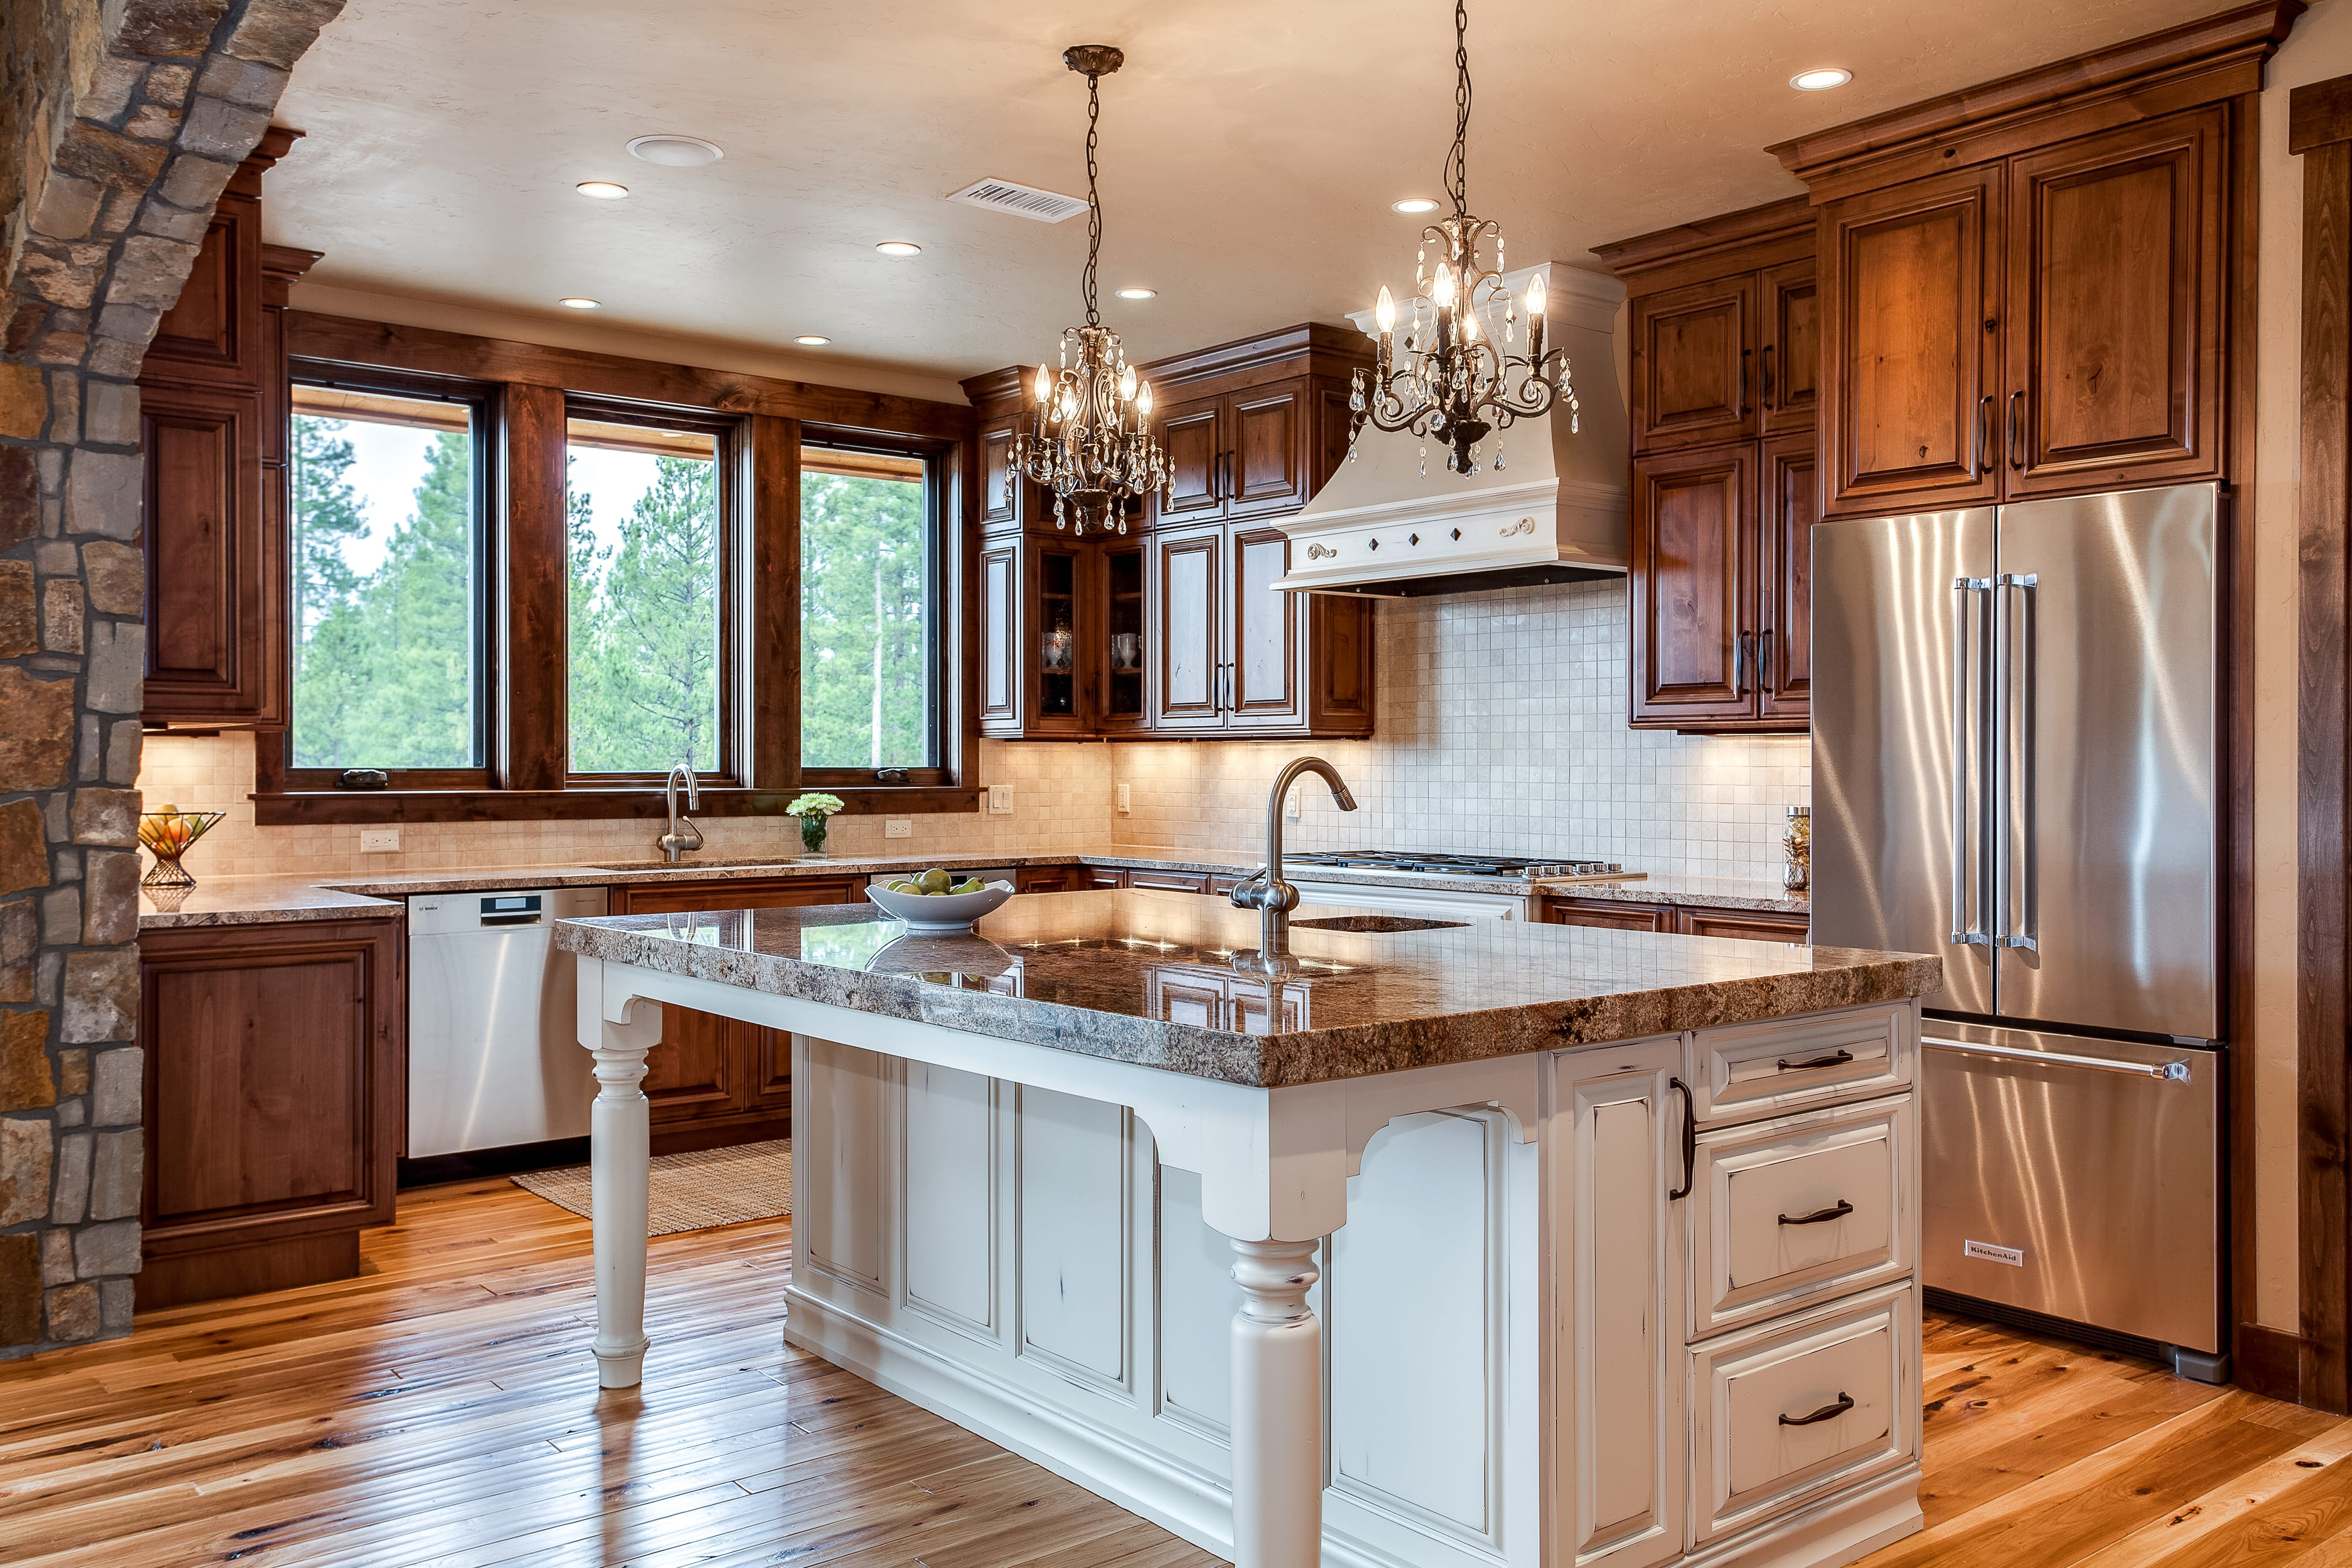 ... Natural Wood Cabinet Kitchen With Small Chandeliers Over Island ...